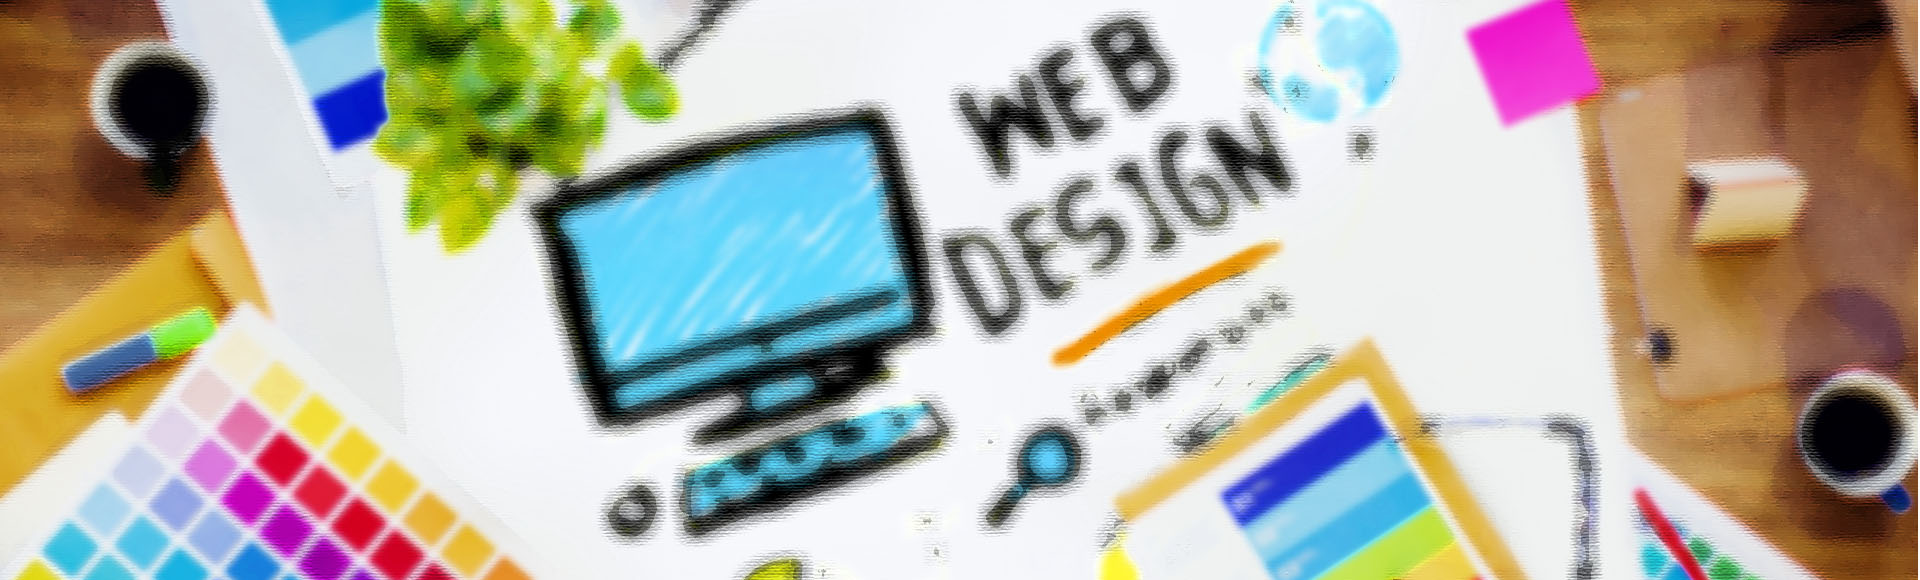 Webbdesign is neverending!